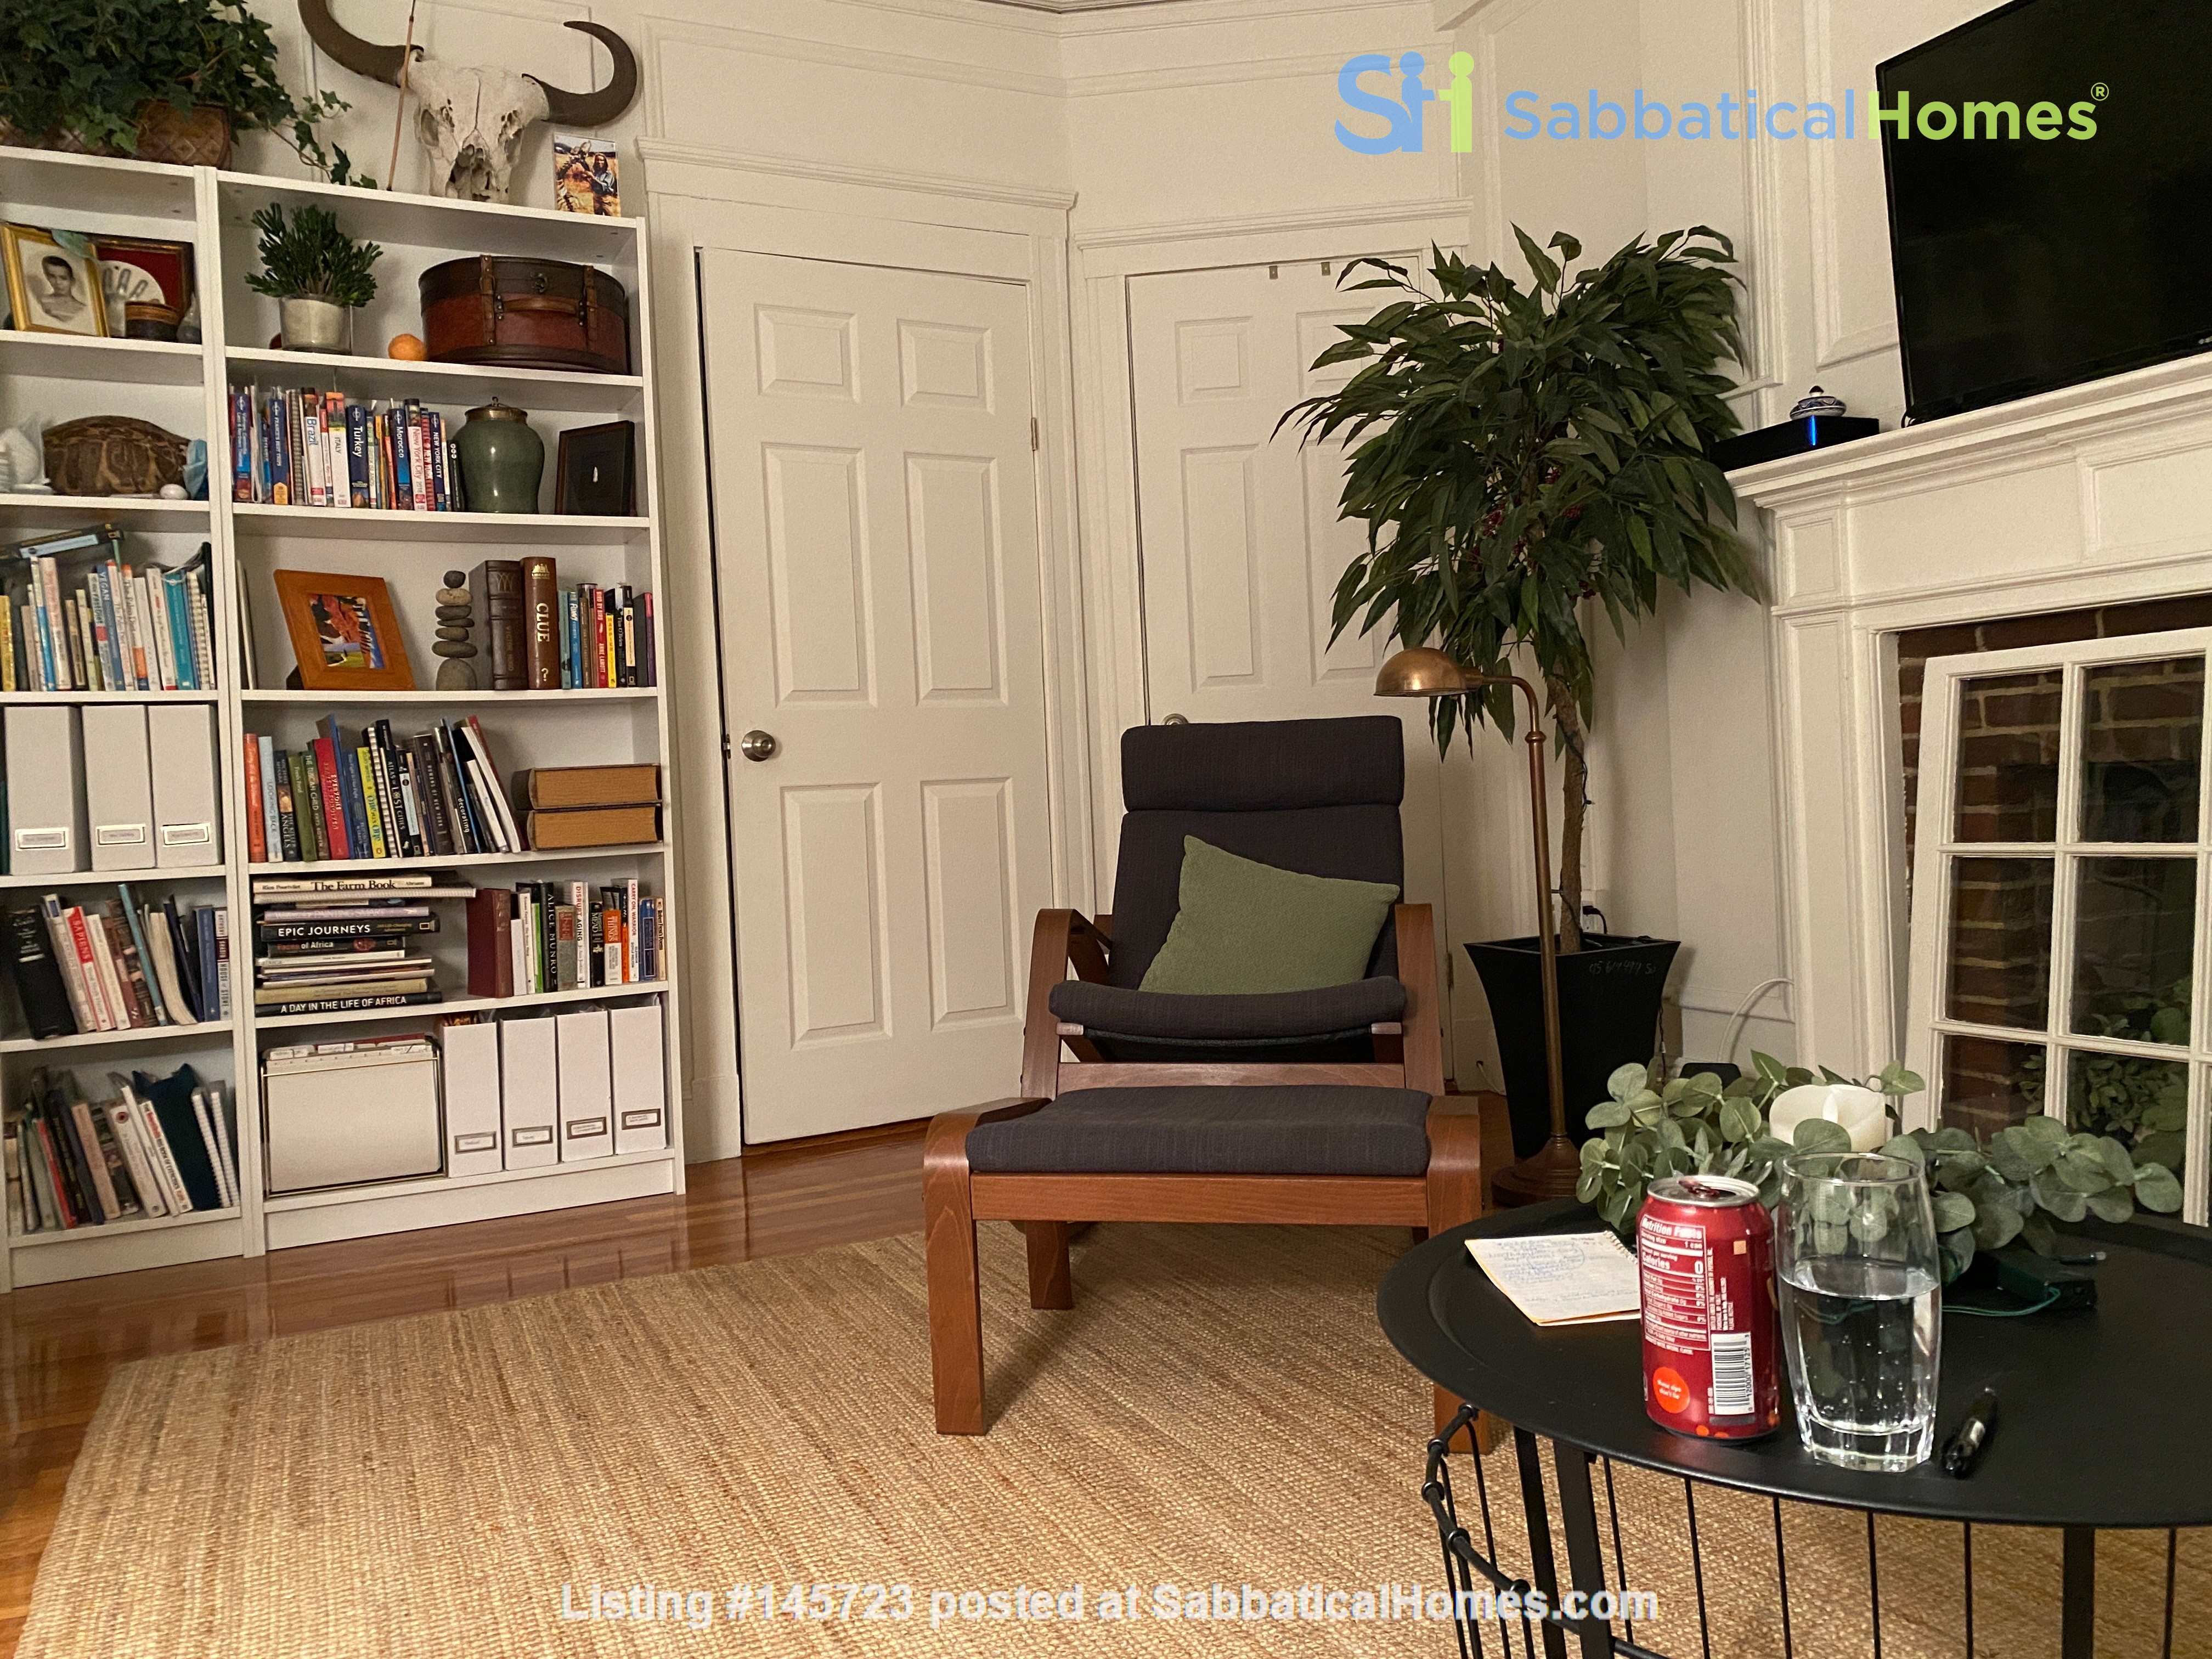 For Rent: A wonderful apartment in the heart of Harvard Square! Home Rental in Cambridge, Massachusetts, United States 1